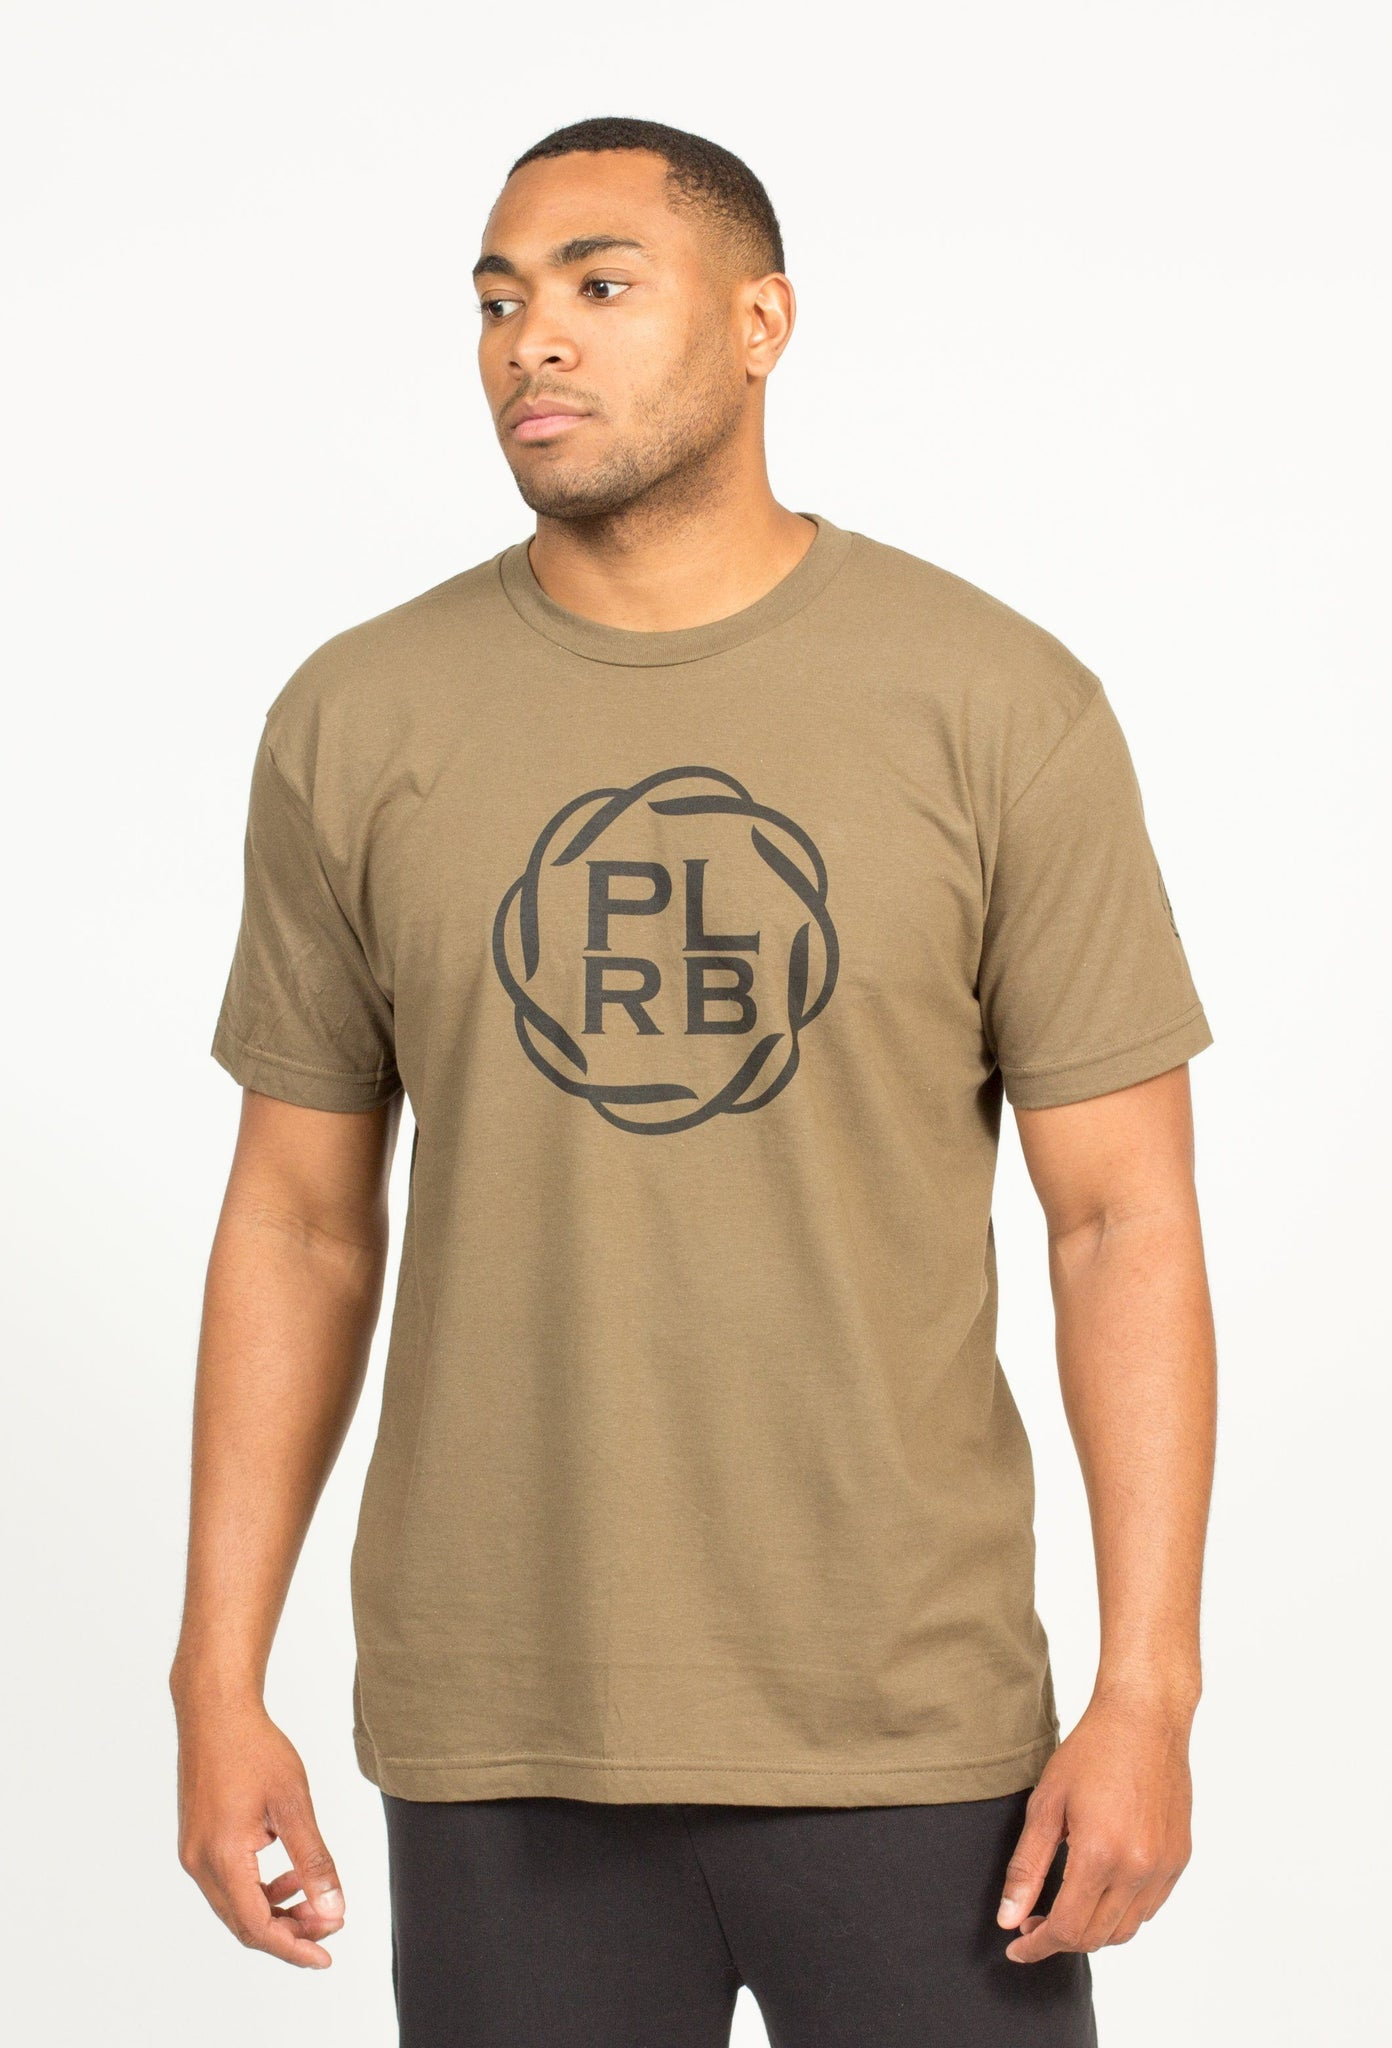 PLRB LOGO T-SHIRT IN ARMY | Poor Little Rich Boy Clothing